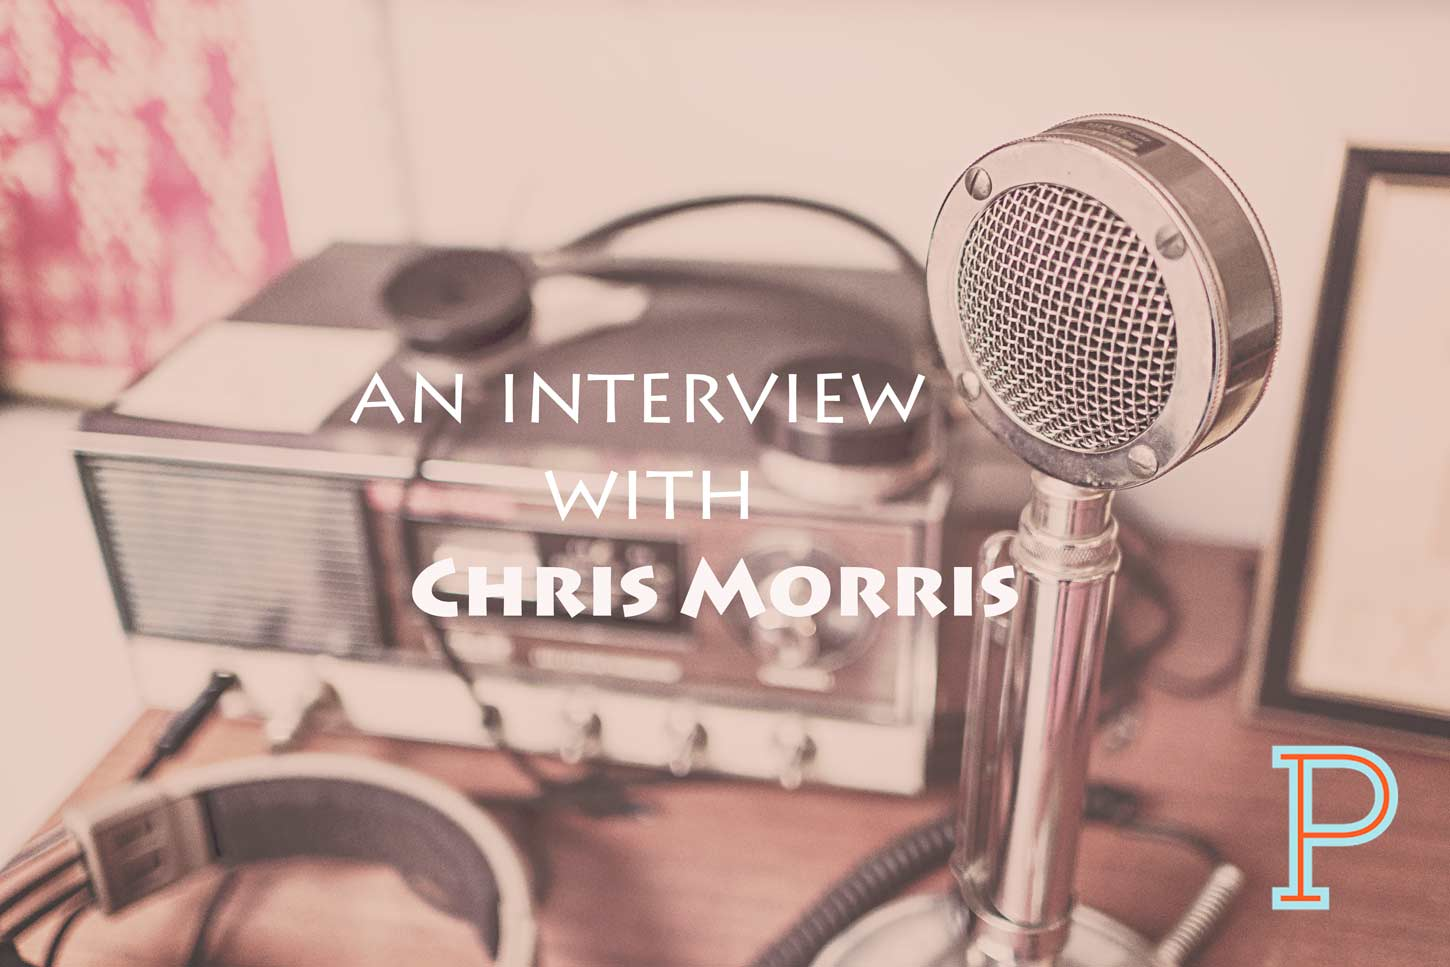 An Interview with Chris Morris